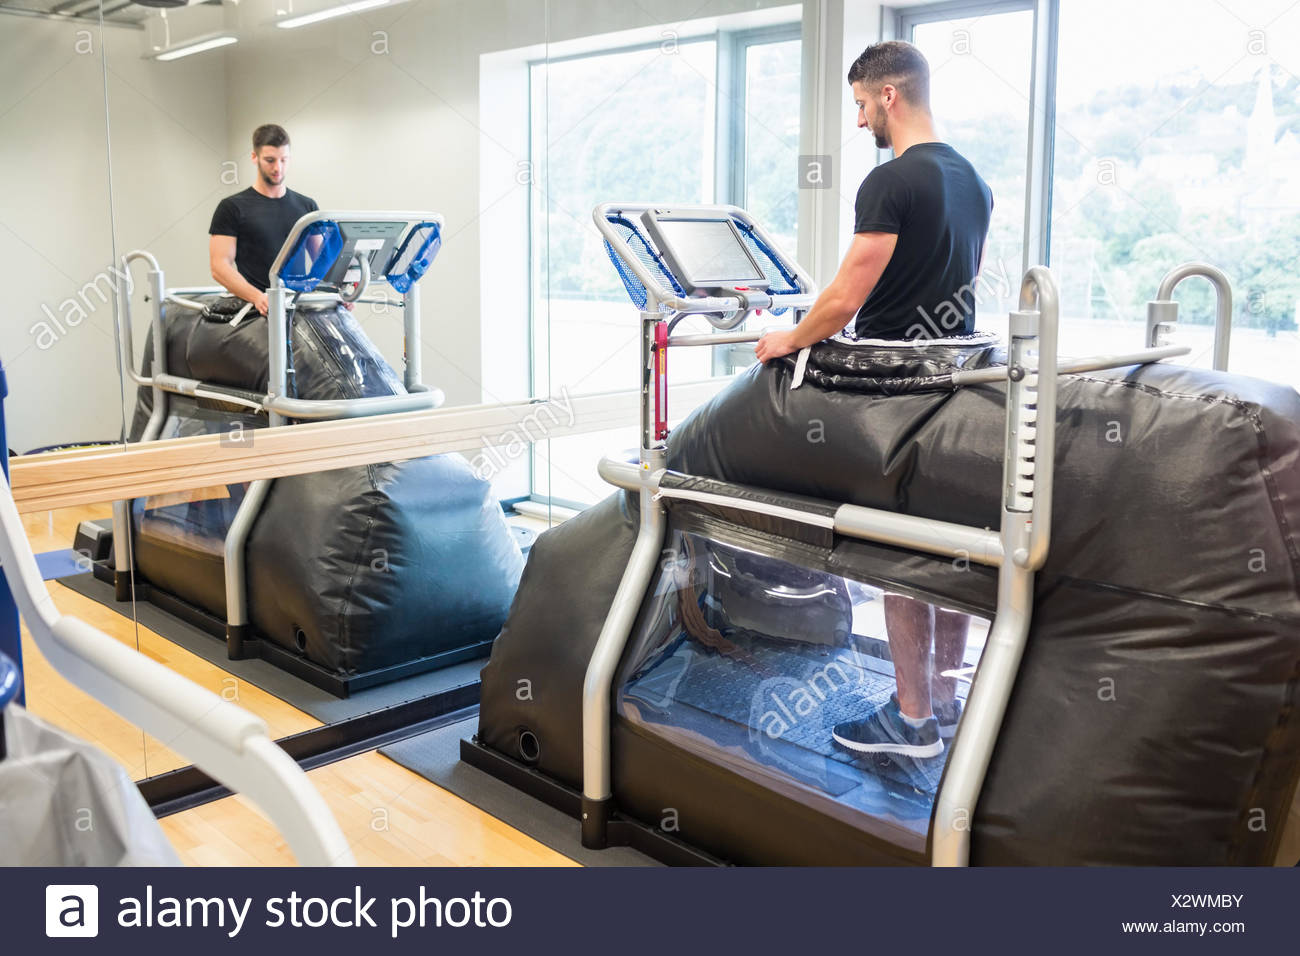 Injured athlete working out on treadmill - Stock Image